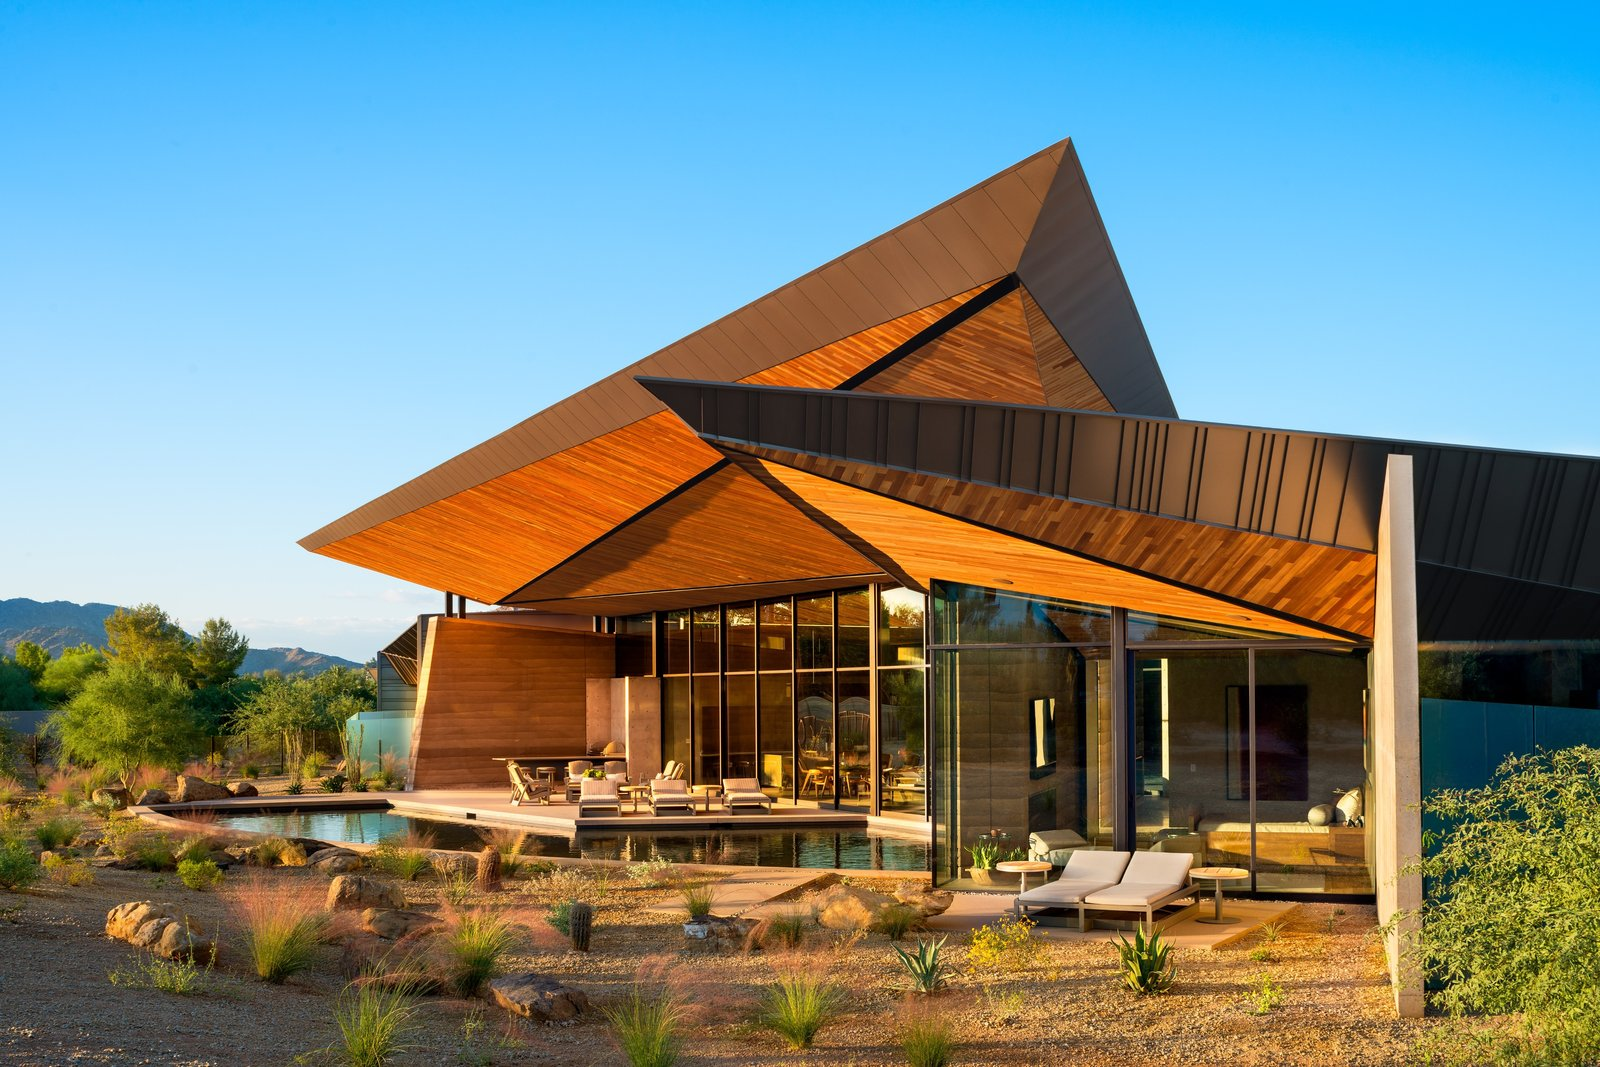 Photo 1 of 14 in A Dramatic Floating Roof Crowns This Rammed-Earth Home in Arizona